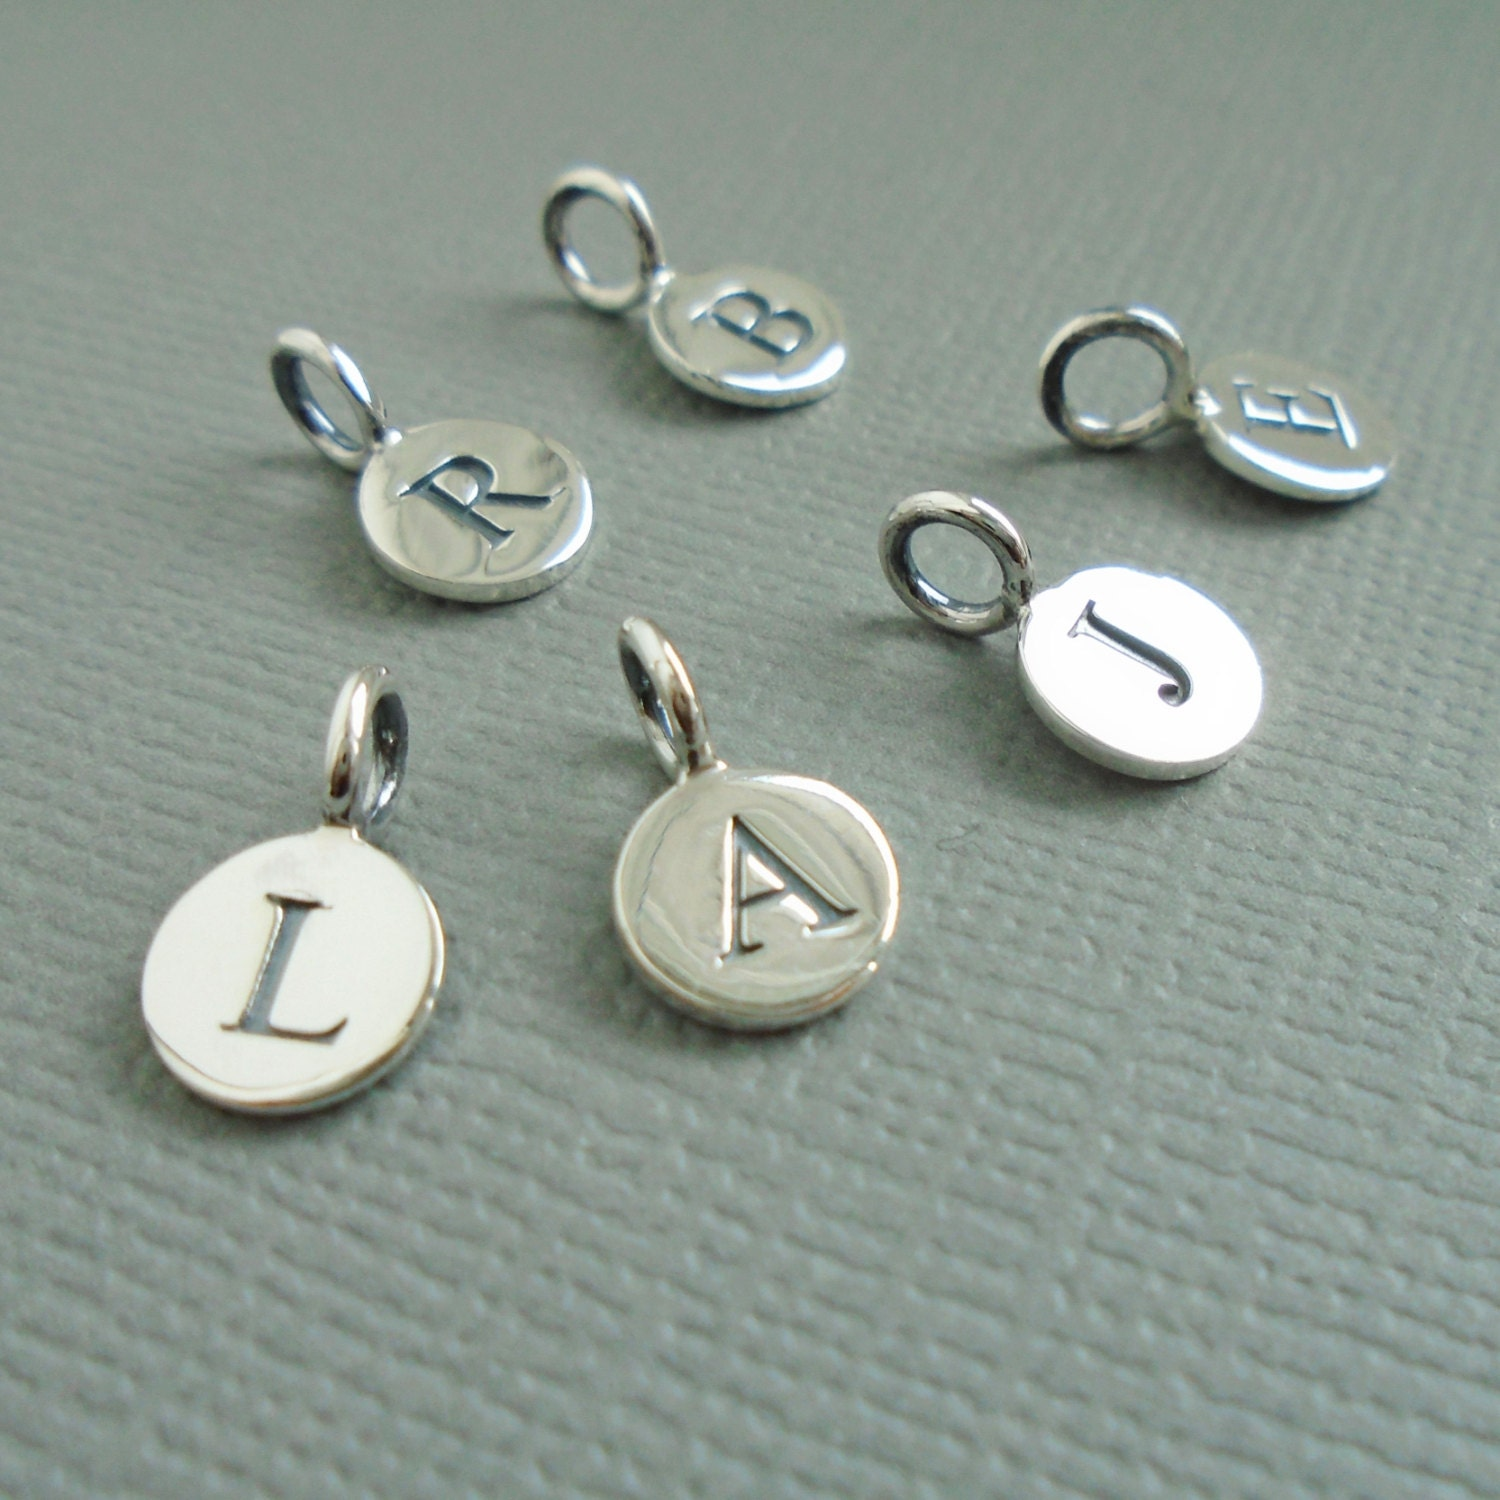 Initial Charms For Bracelets: Sterling Silver Letter Initial Charms Letter Jewelry